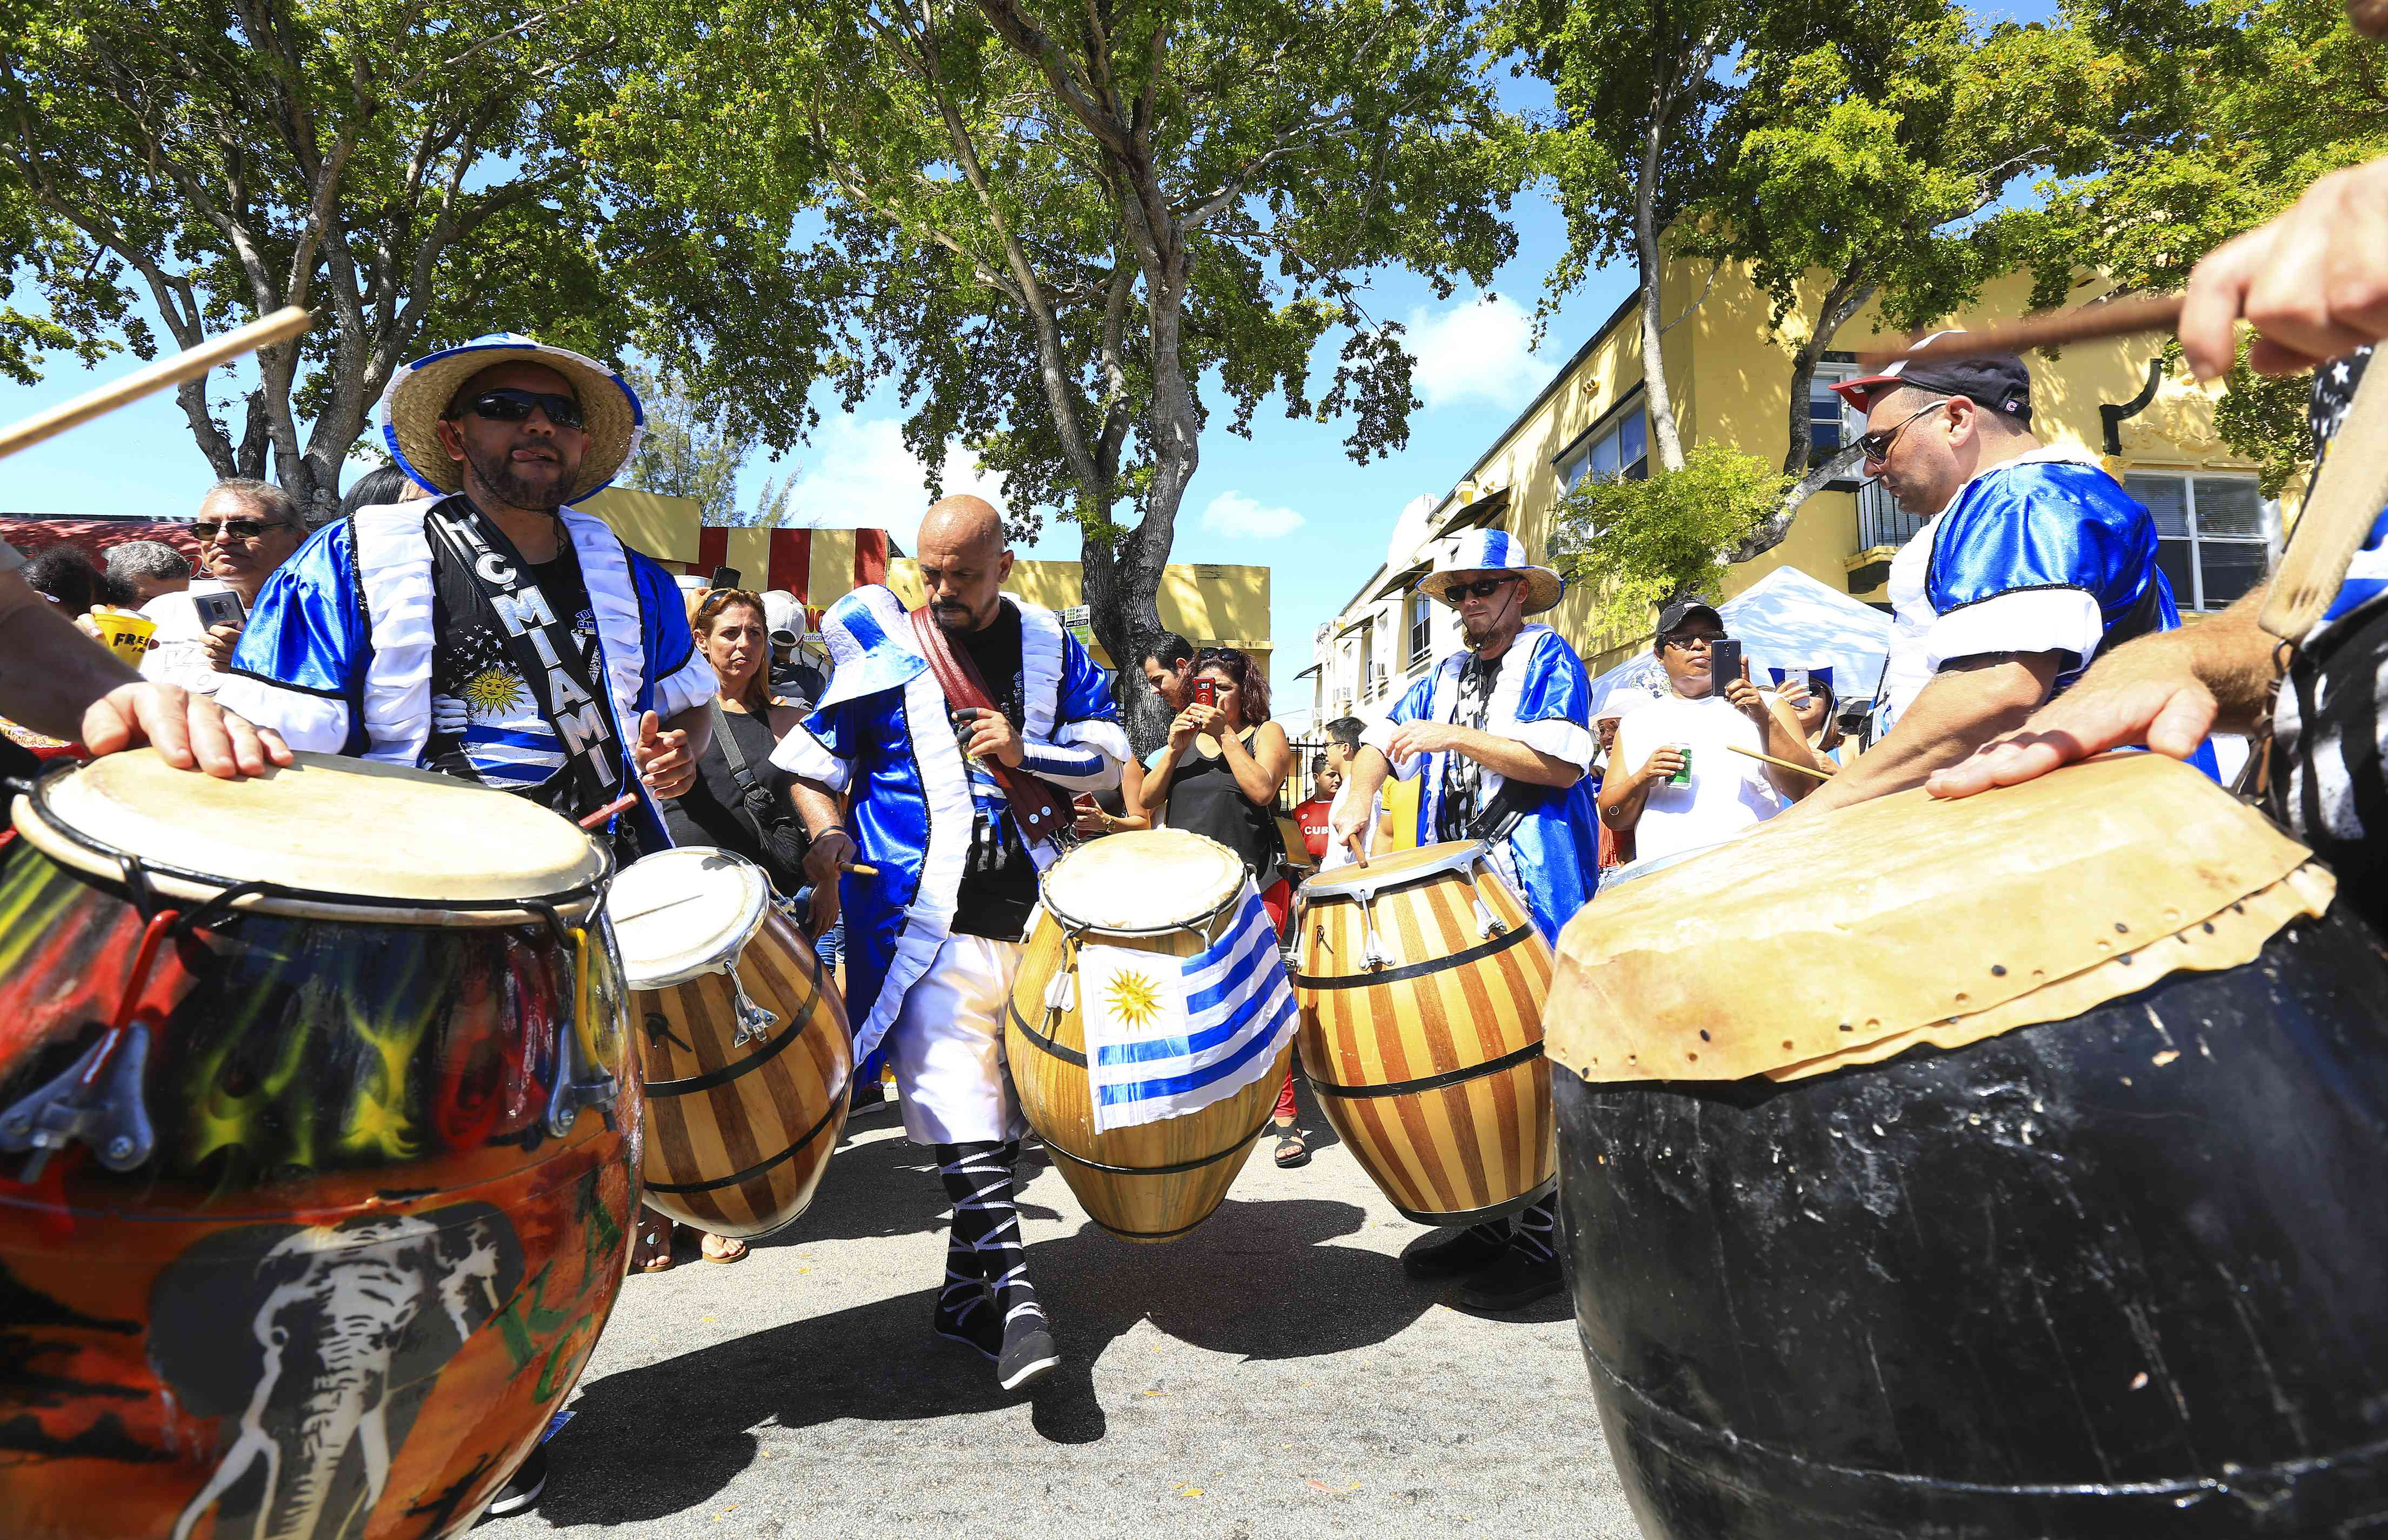 Miami street festival with drummers